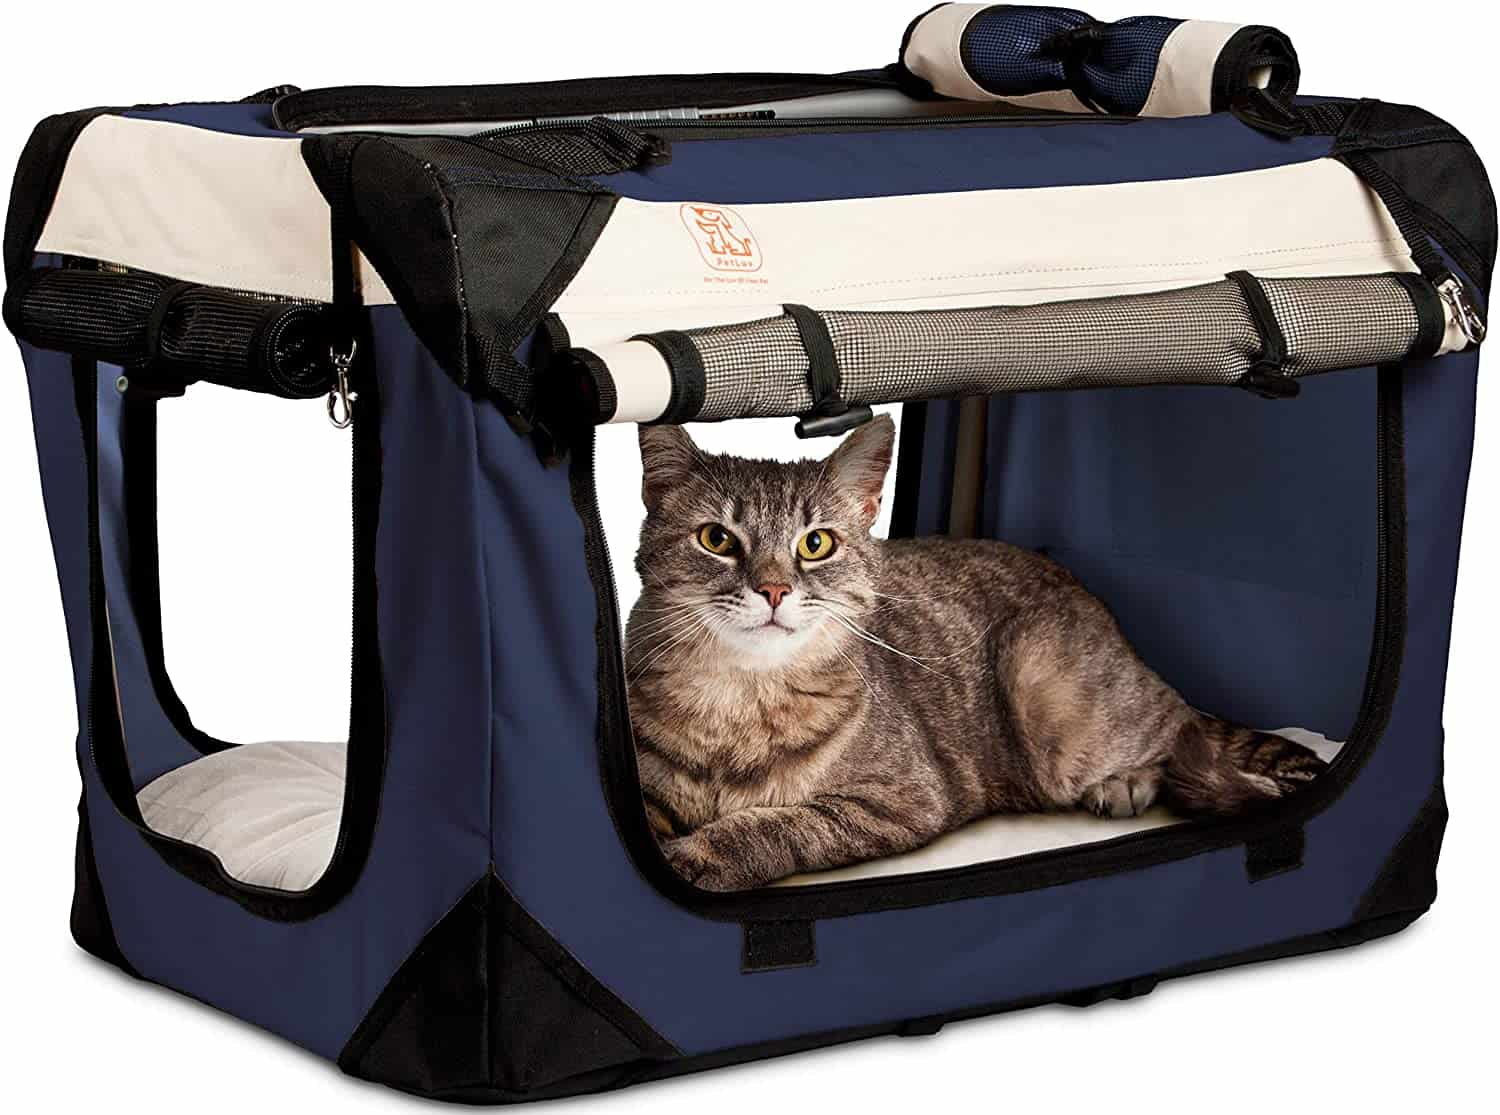 The Best Cat Carriers for 2020: Which Are They? 3